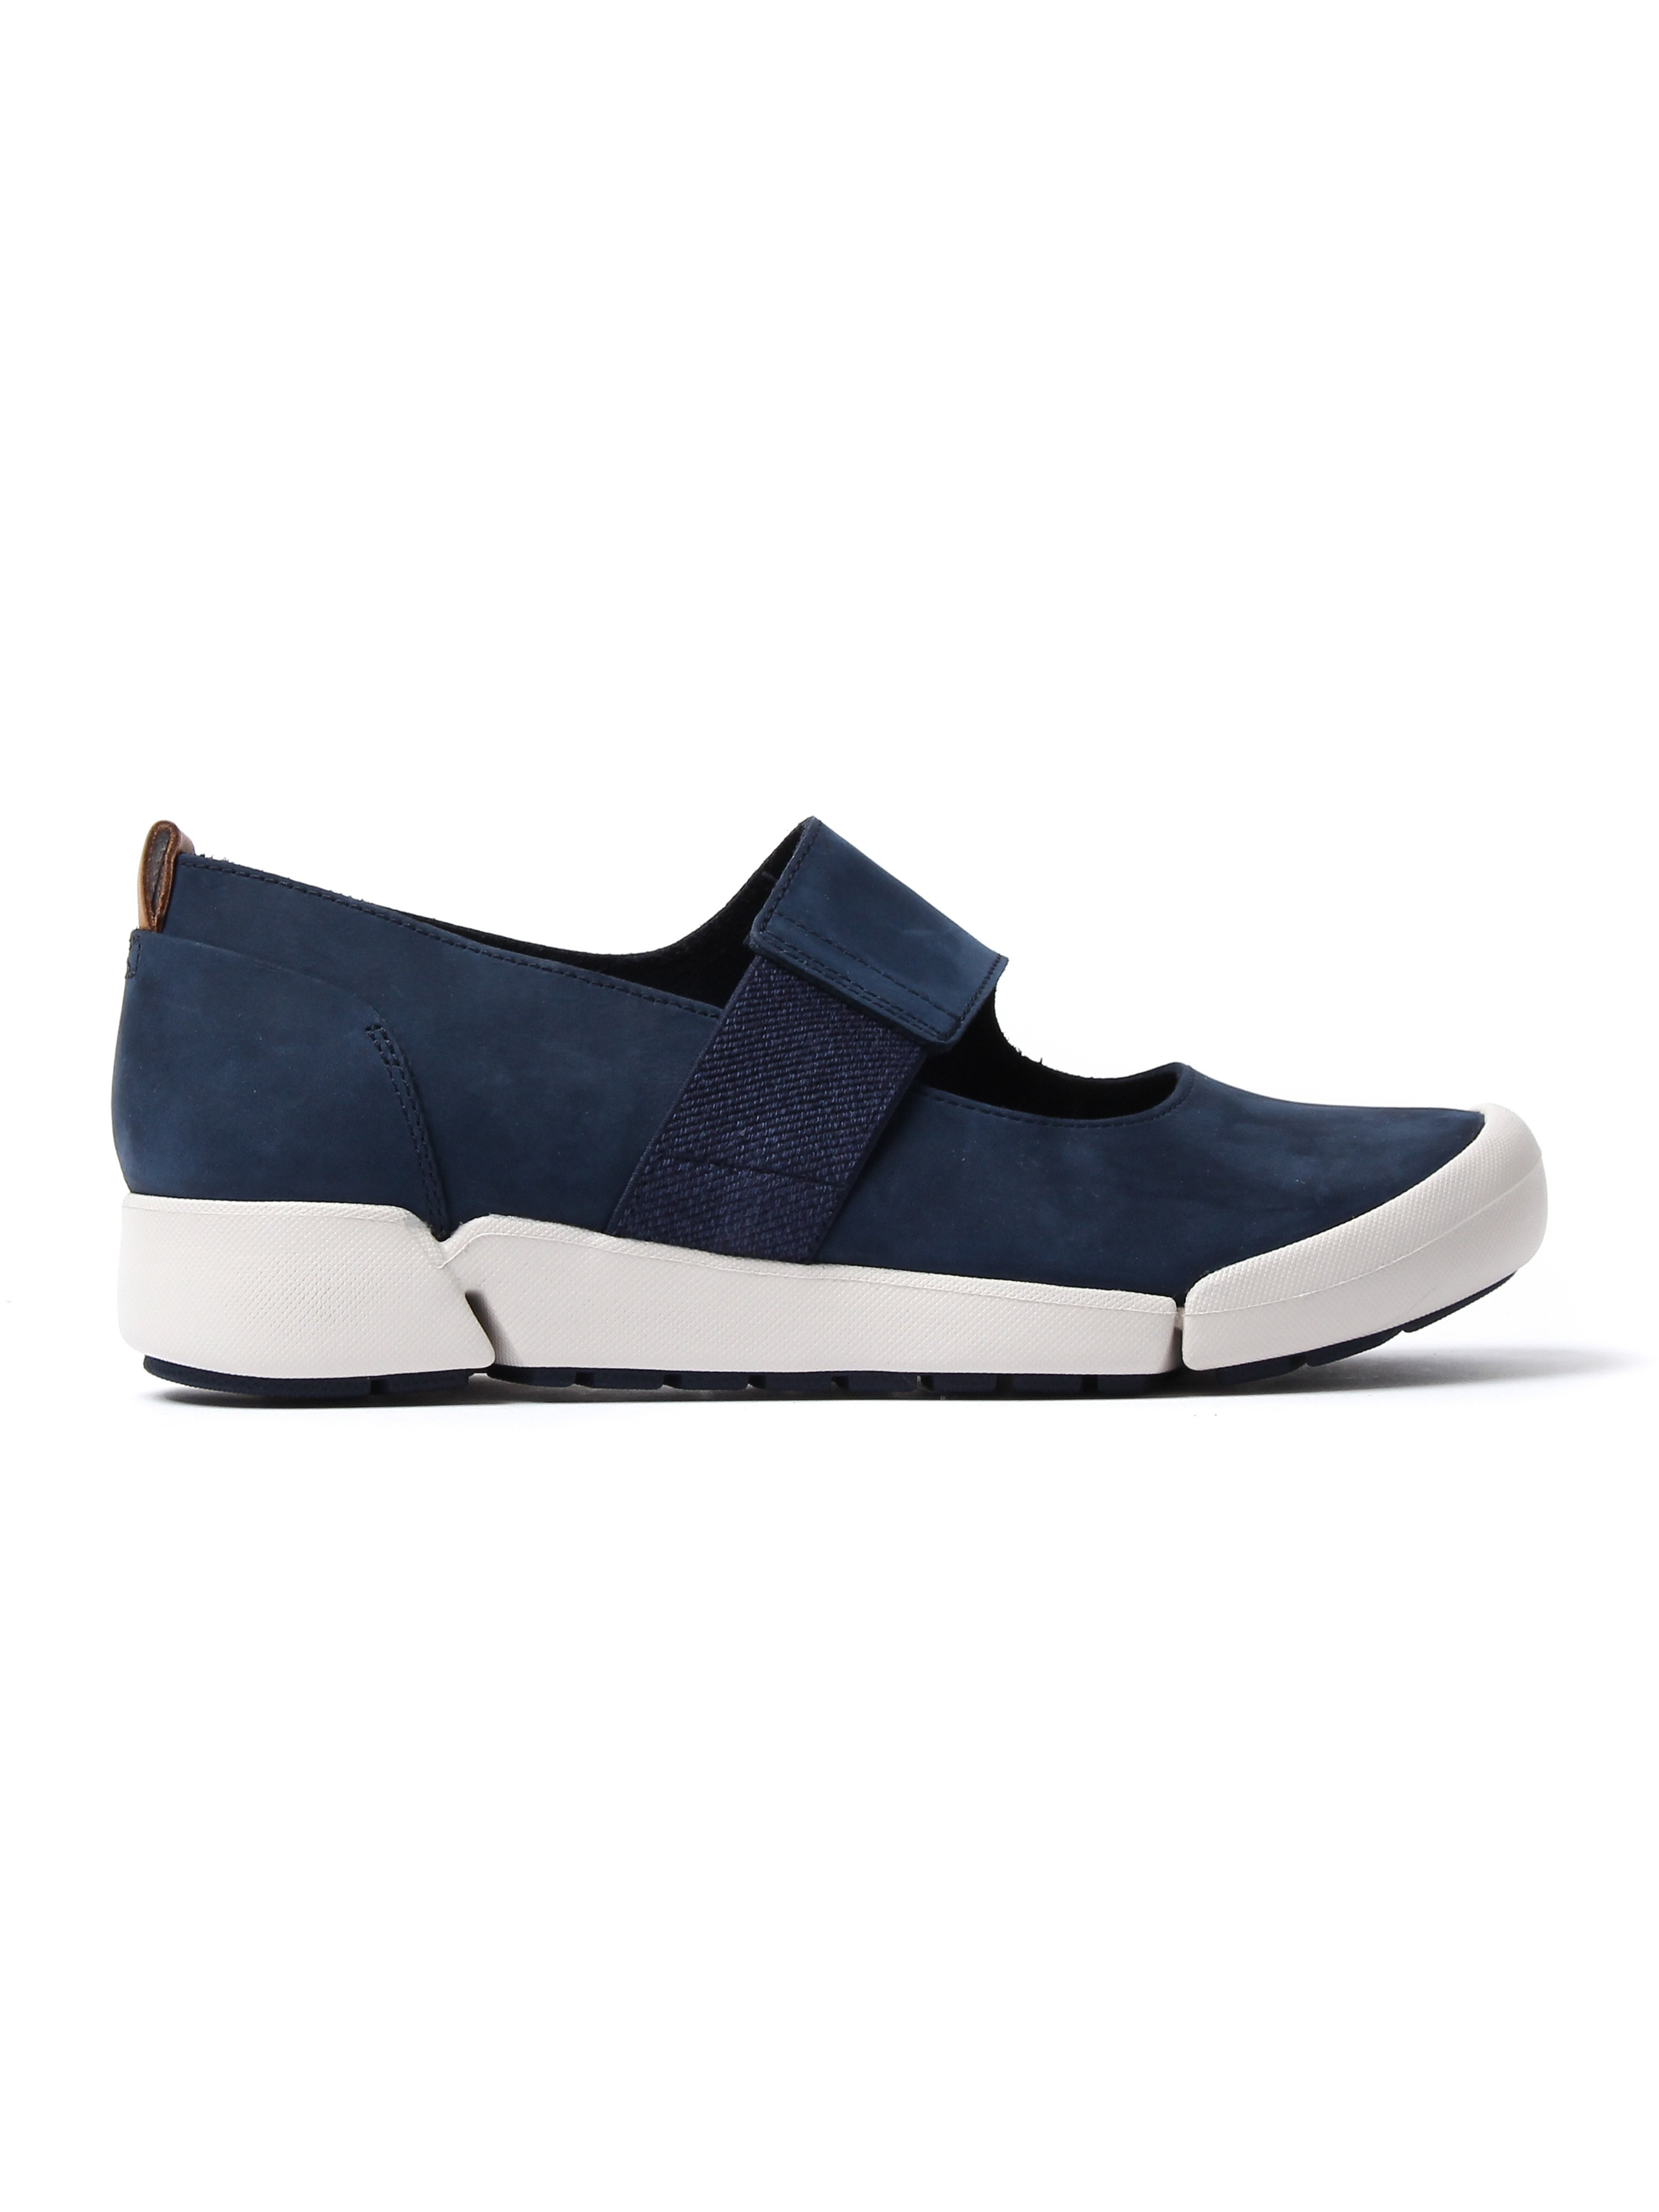 Clarks Women's Tri Ava Shoes - Navy Nubuck